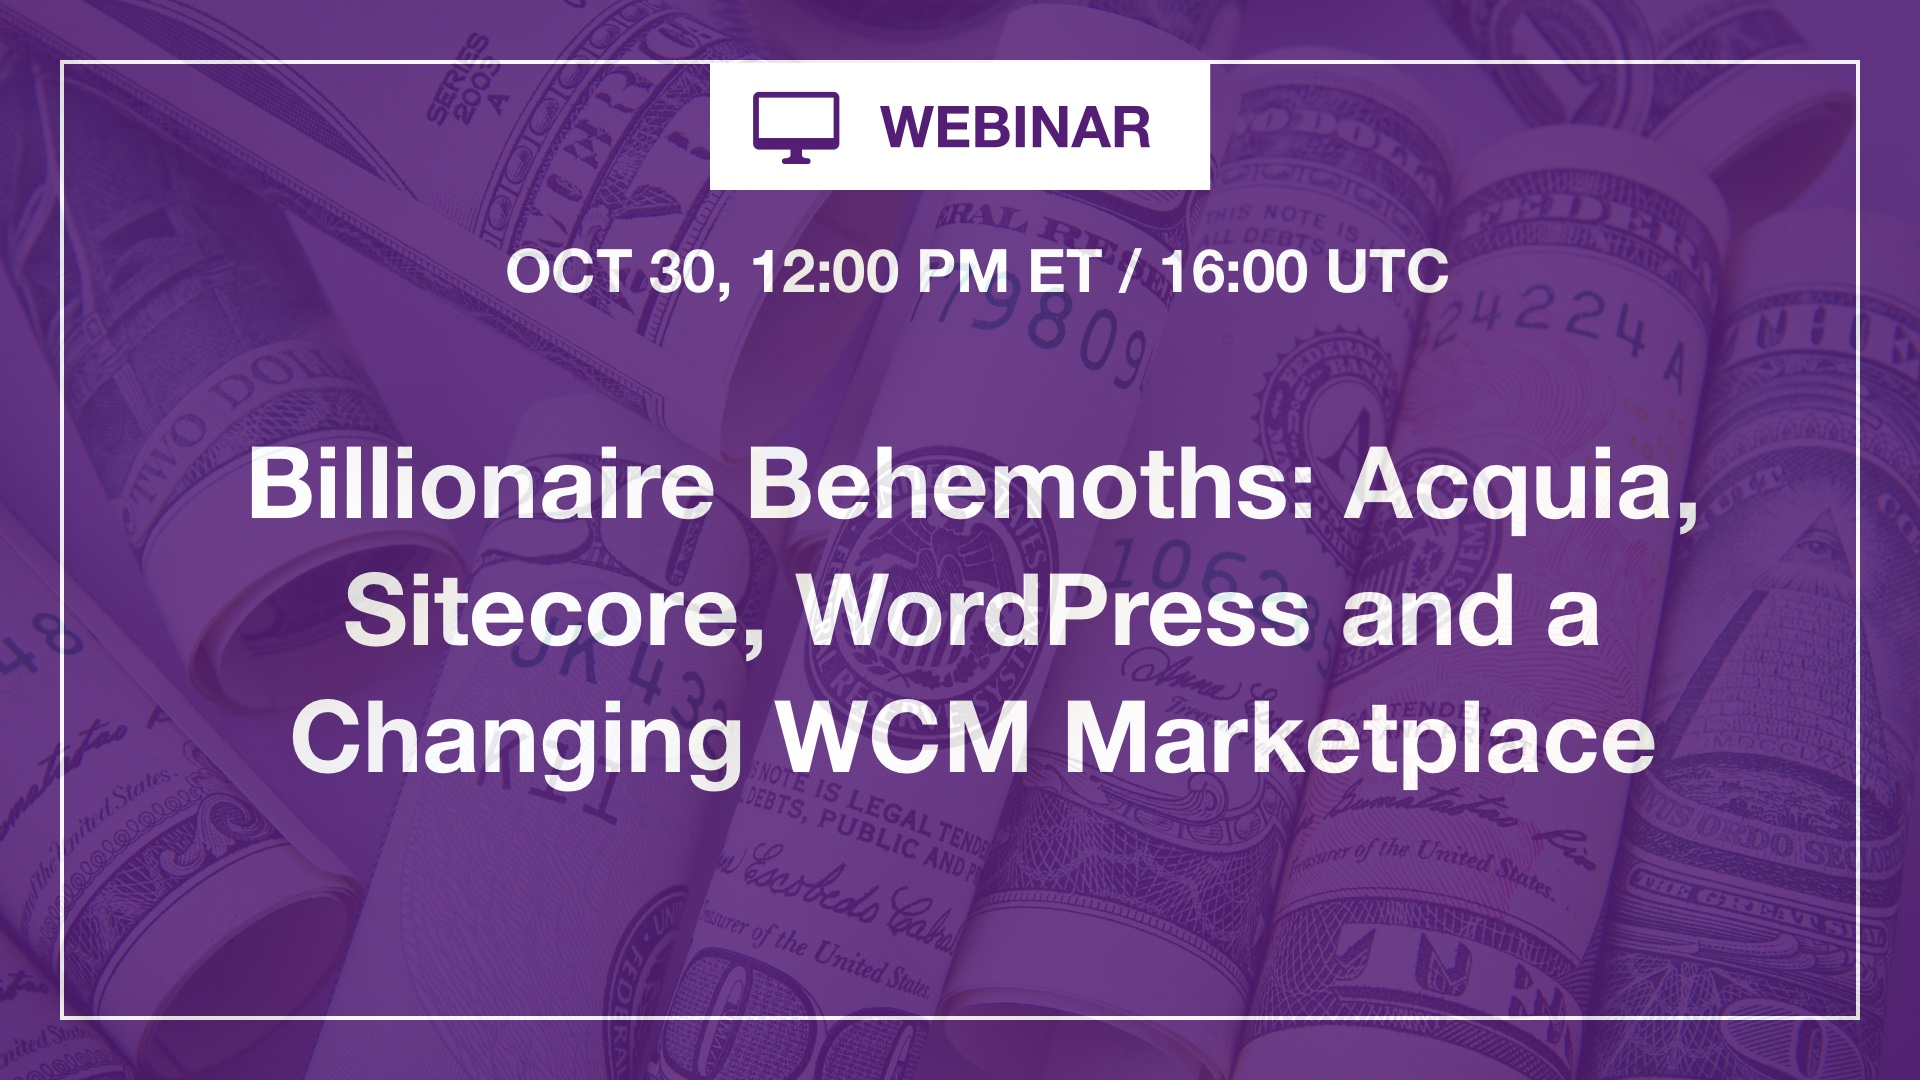 [Webinar] Billionaire Behemoths: Acquia, Sitecore, WordPress and a Changing WCM Marketplace